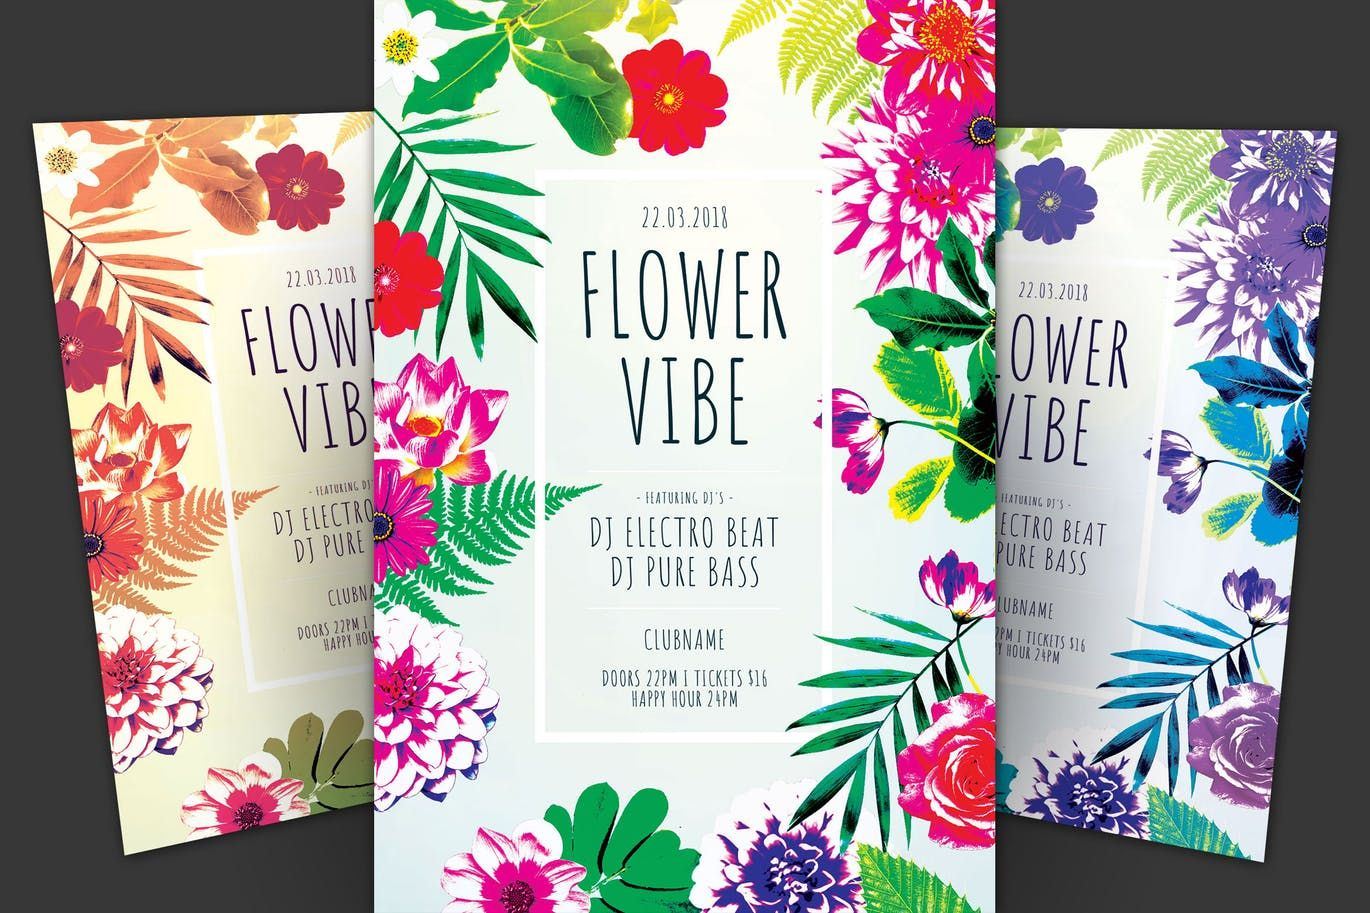 Flower vibe flyer by stylewish on flyer design templates